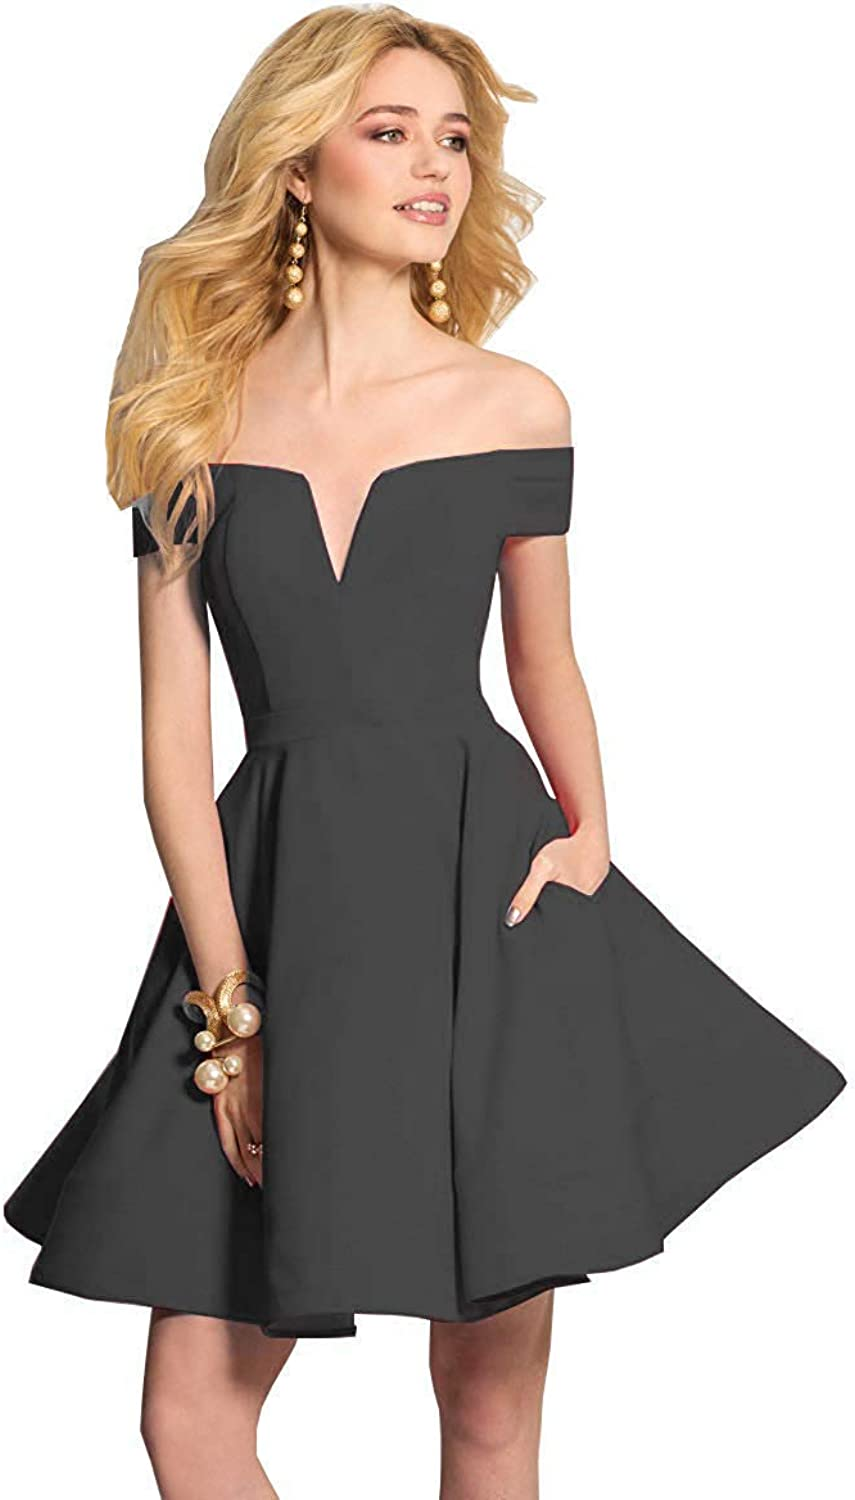 ZLQQ Womens Off The Shoulder Satin Homecoming Dress Short Prom Party Gown with Pockets